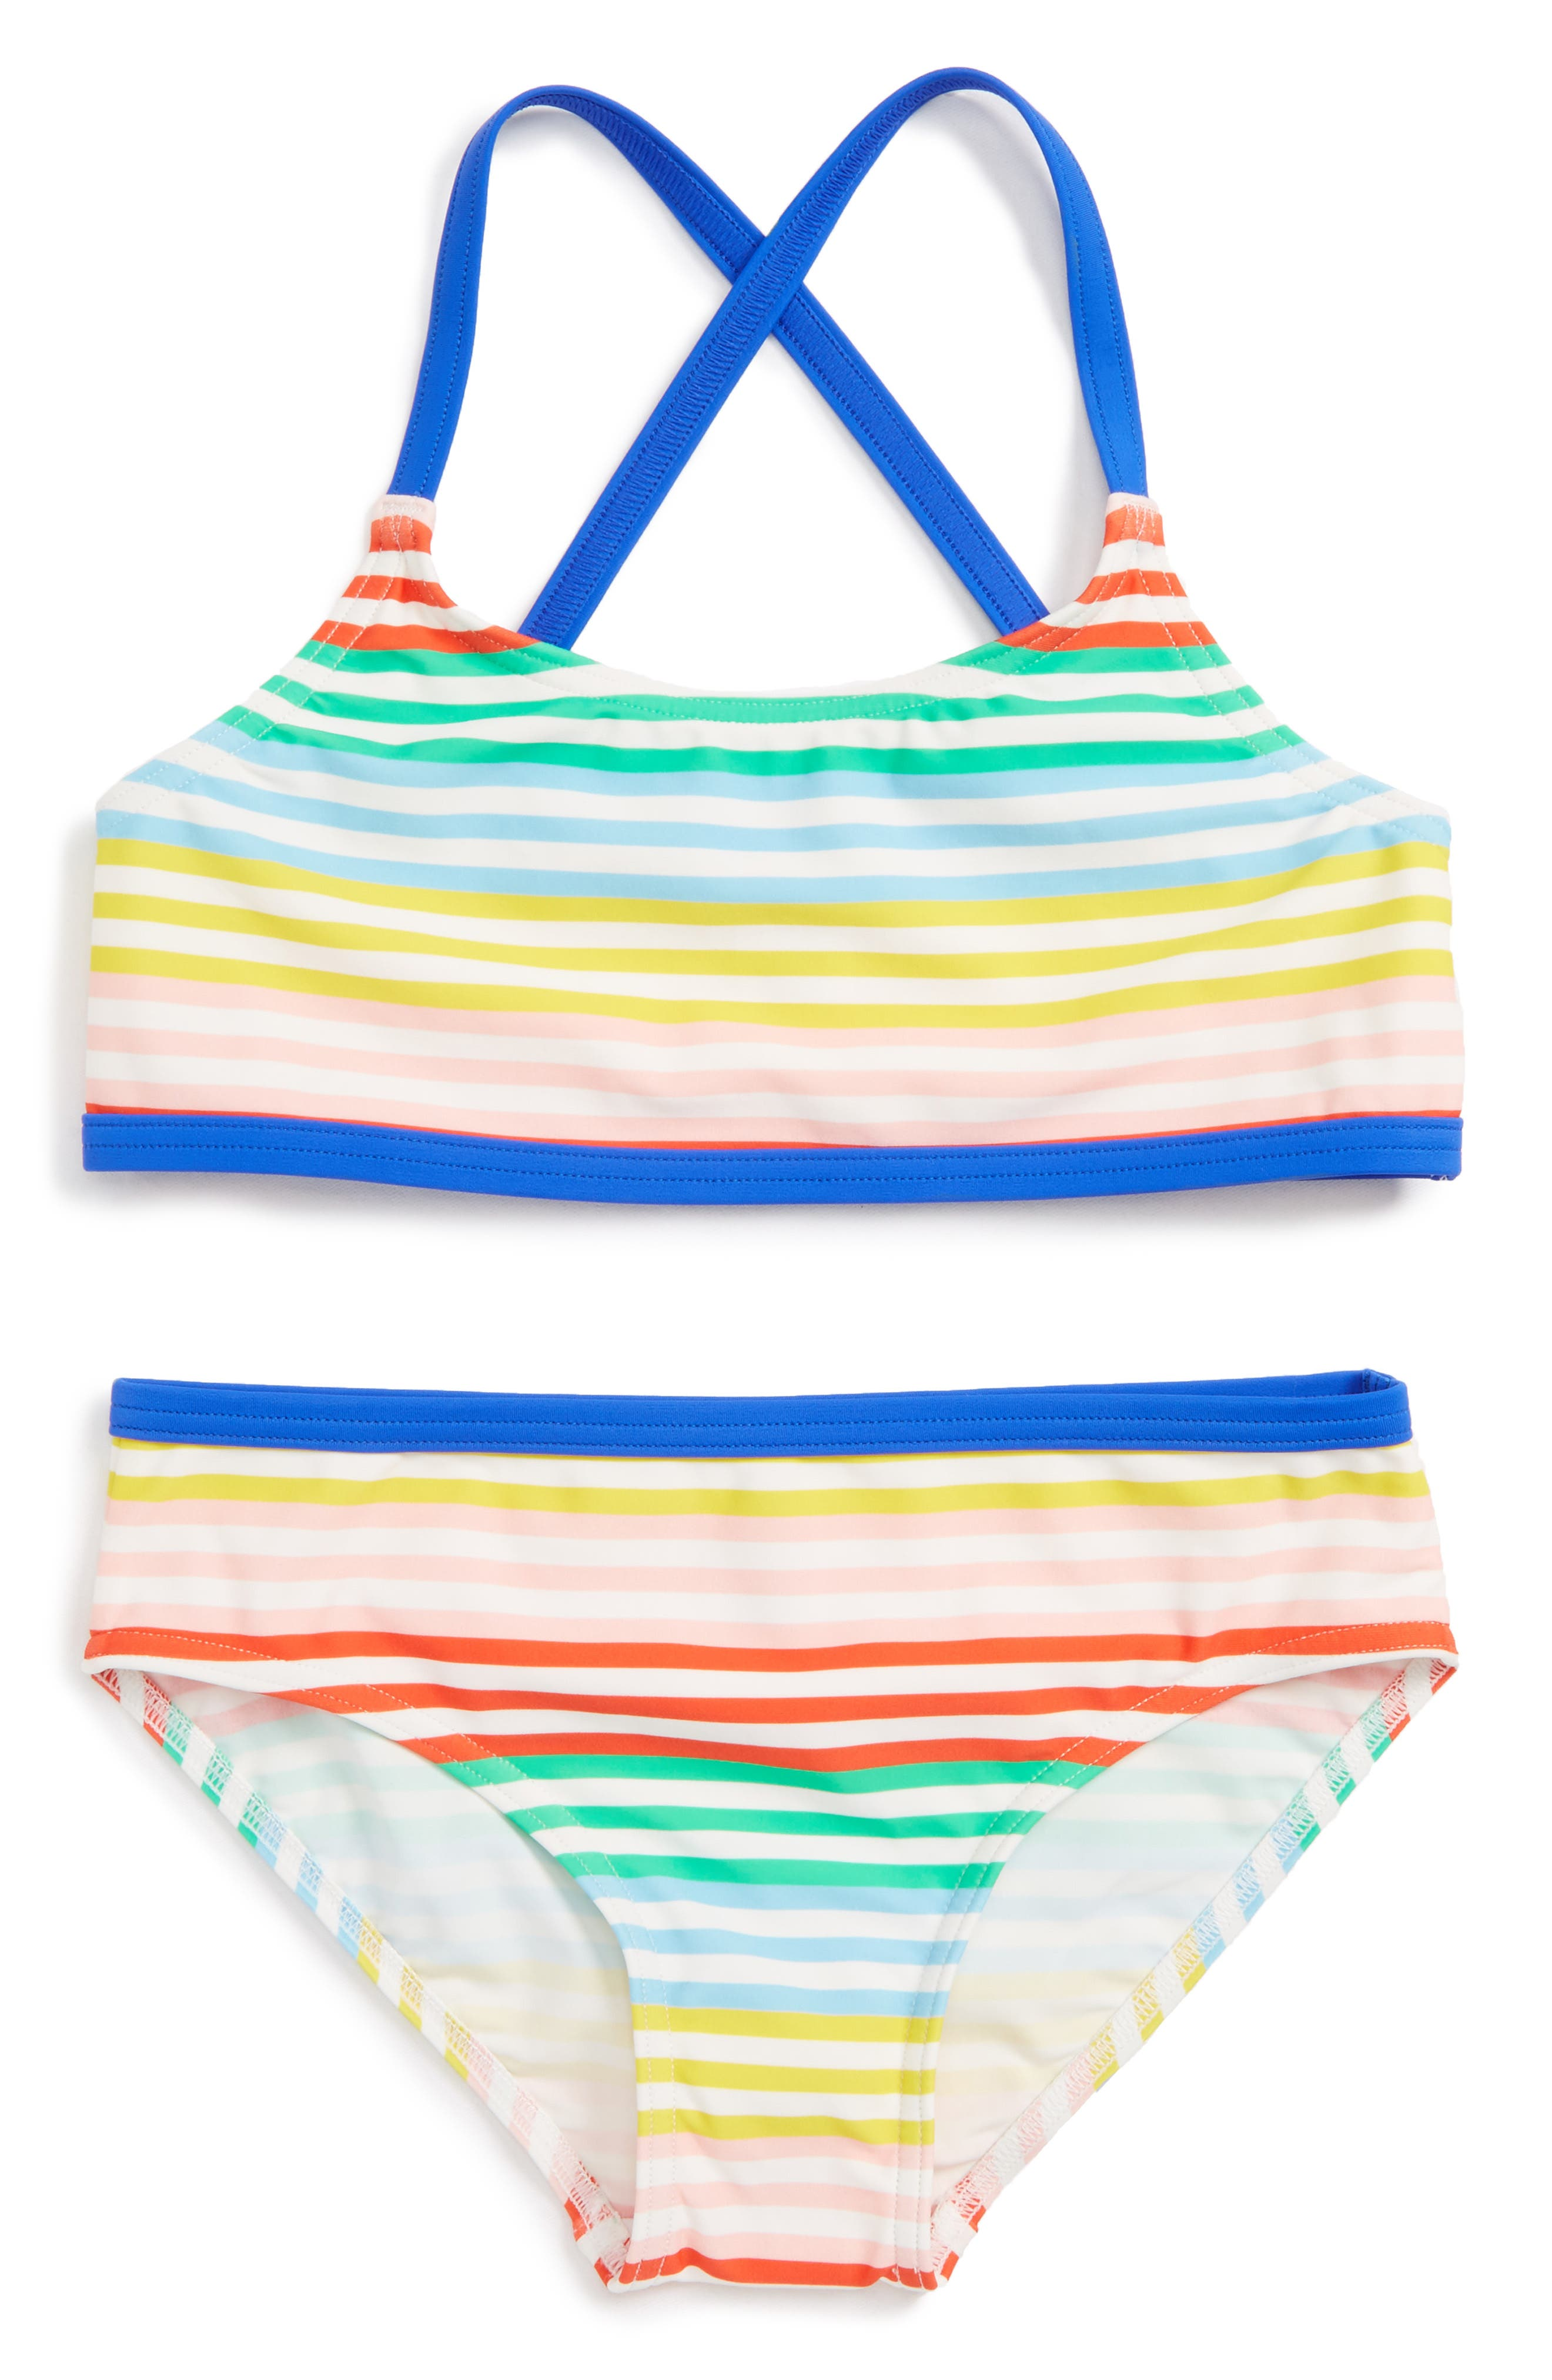 Into the Sea Two-Piece Swimsuit,                             Main thumbnail 1, color,                             406